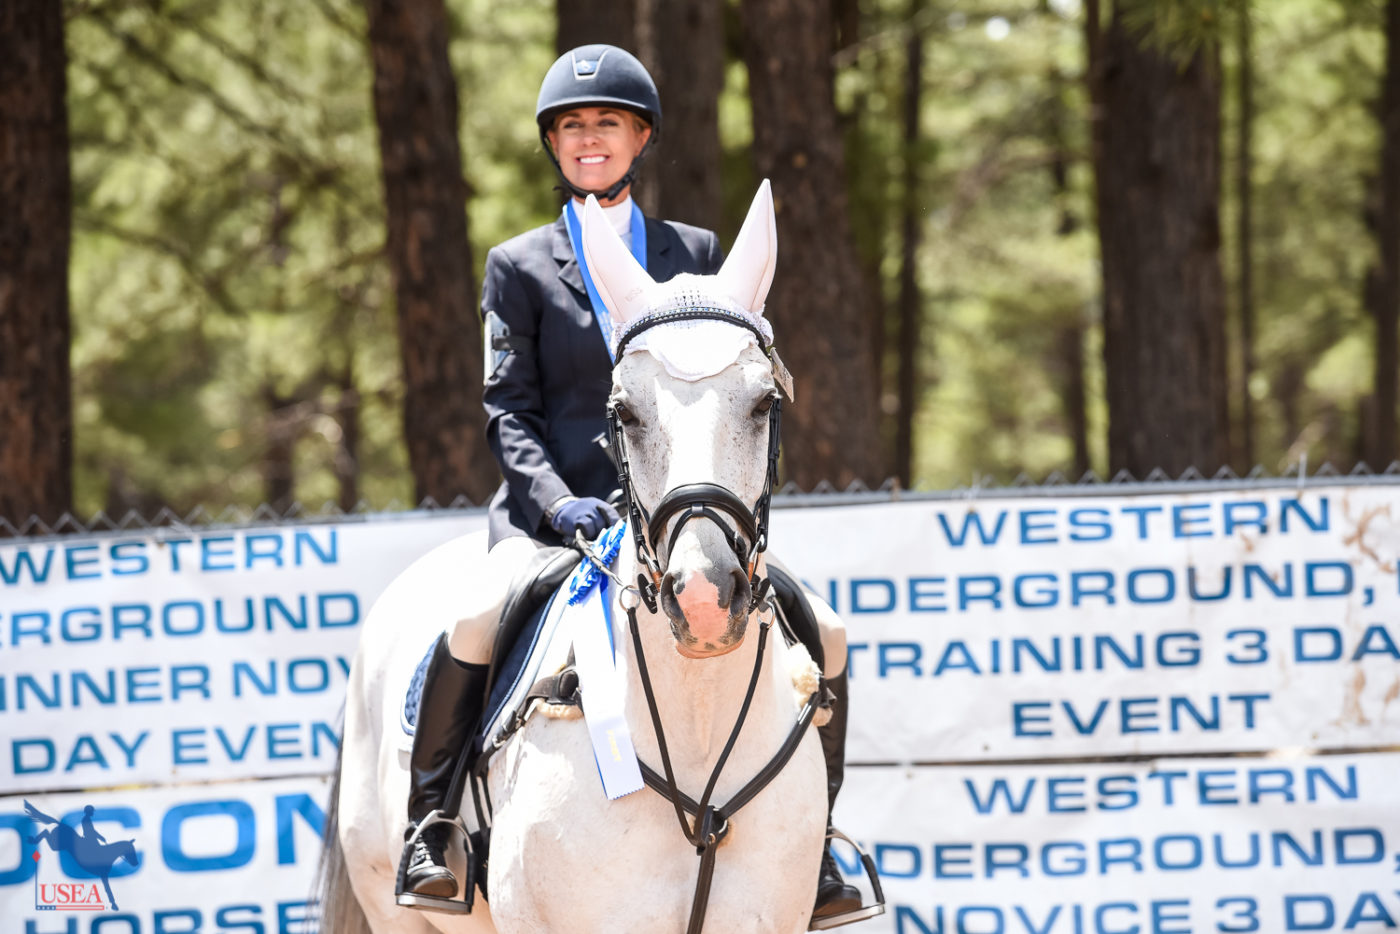 Winner winner chicken dinner! USEA/Jessica Duffy Photo.